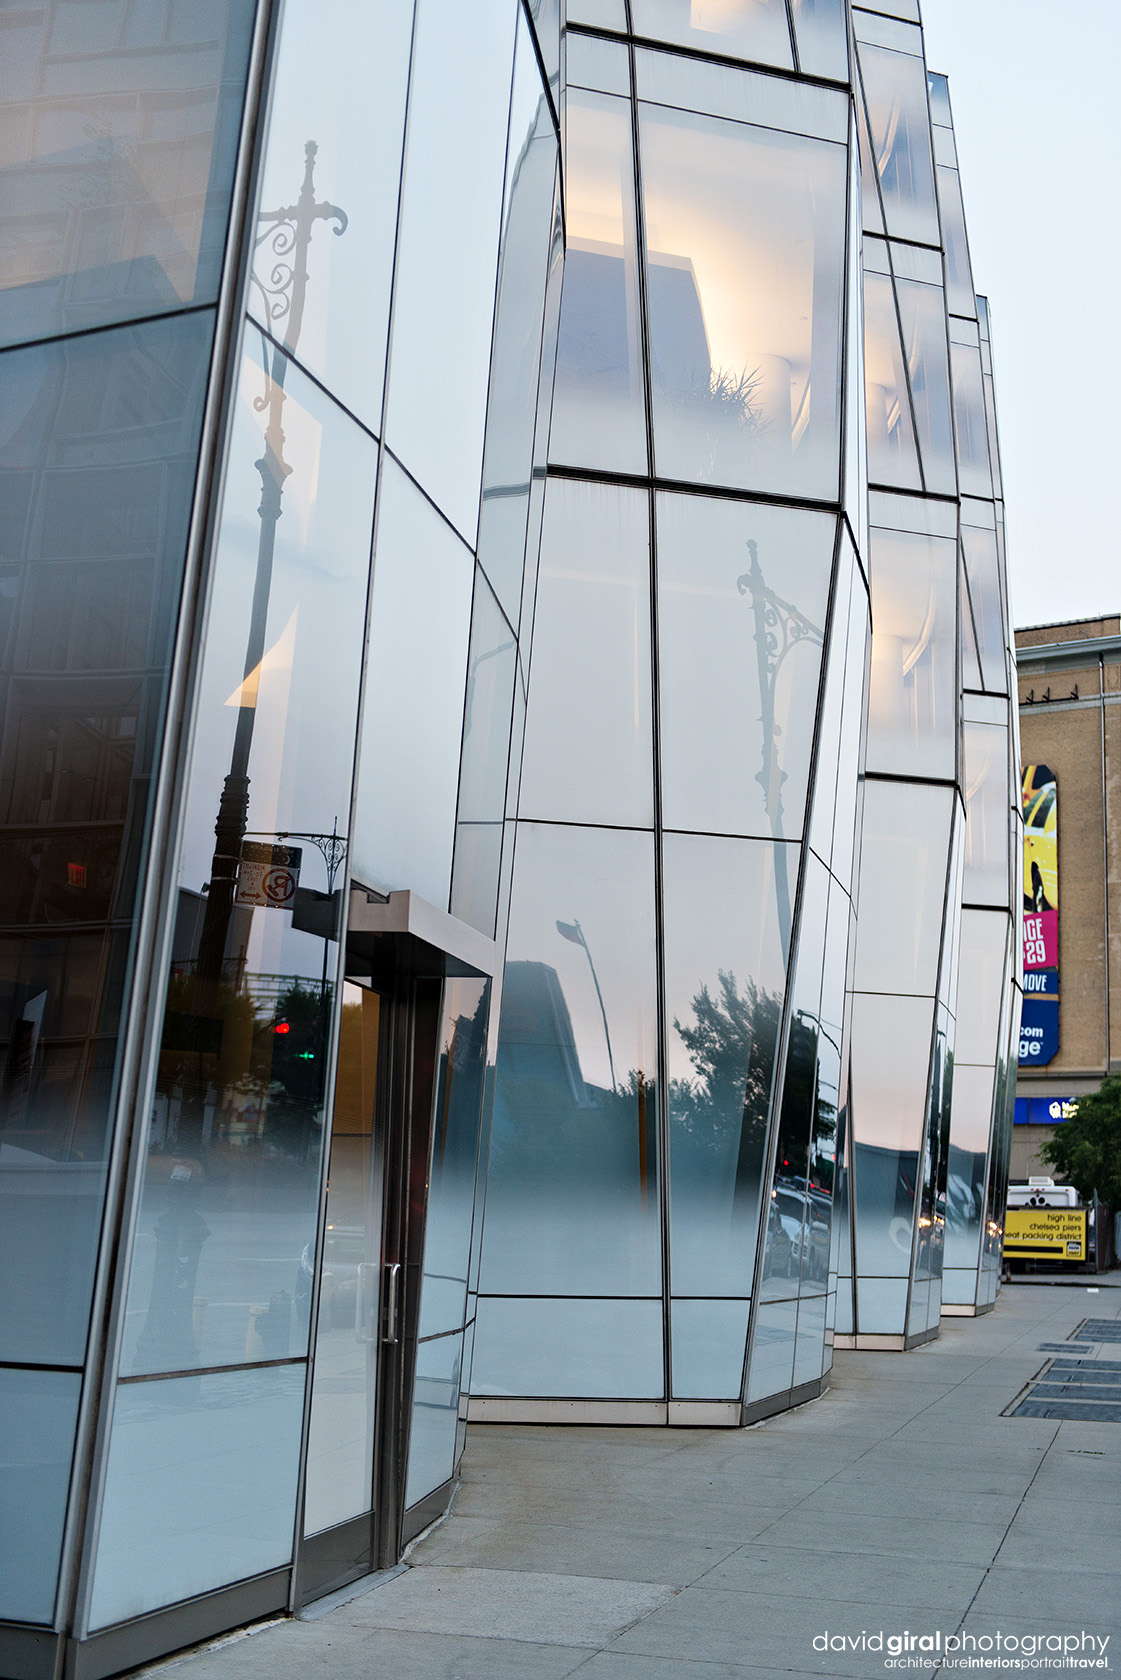 IAC Building detail at dusk by architect Frank Ghery Nikon D800 + Nikkor 24-70mm F/2.8 GI @ 50mm | ISO400 - 1/250s - F/2.8